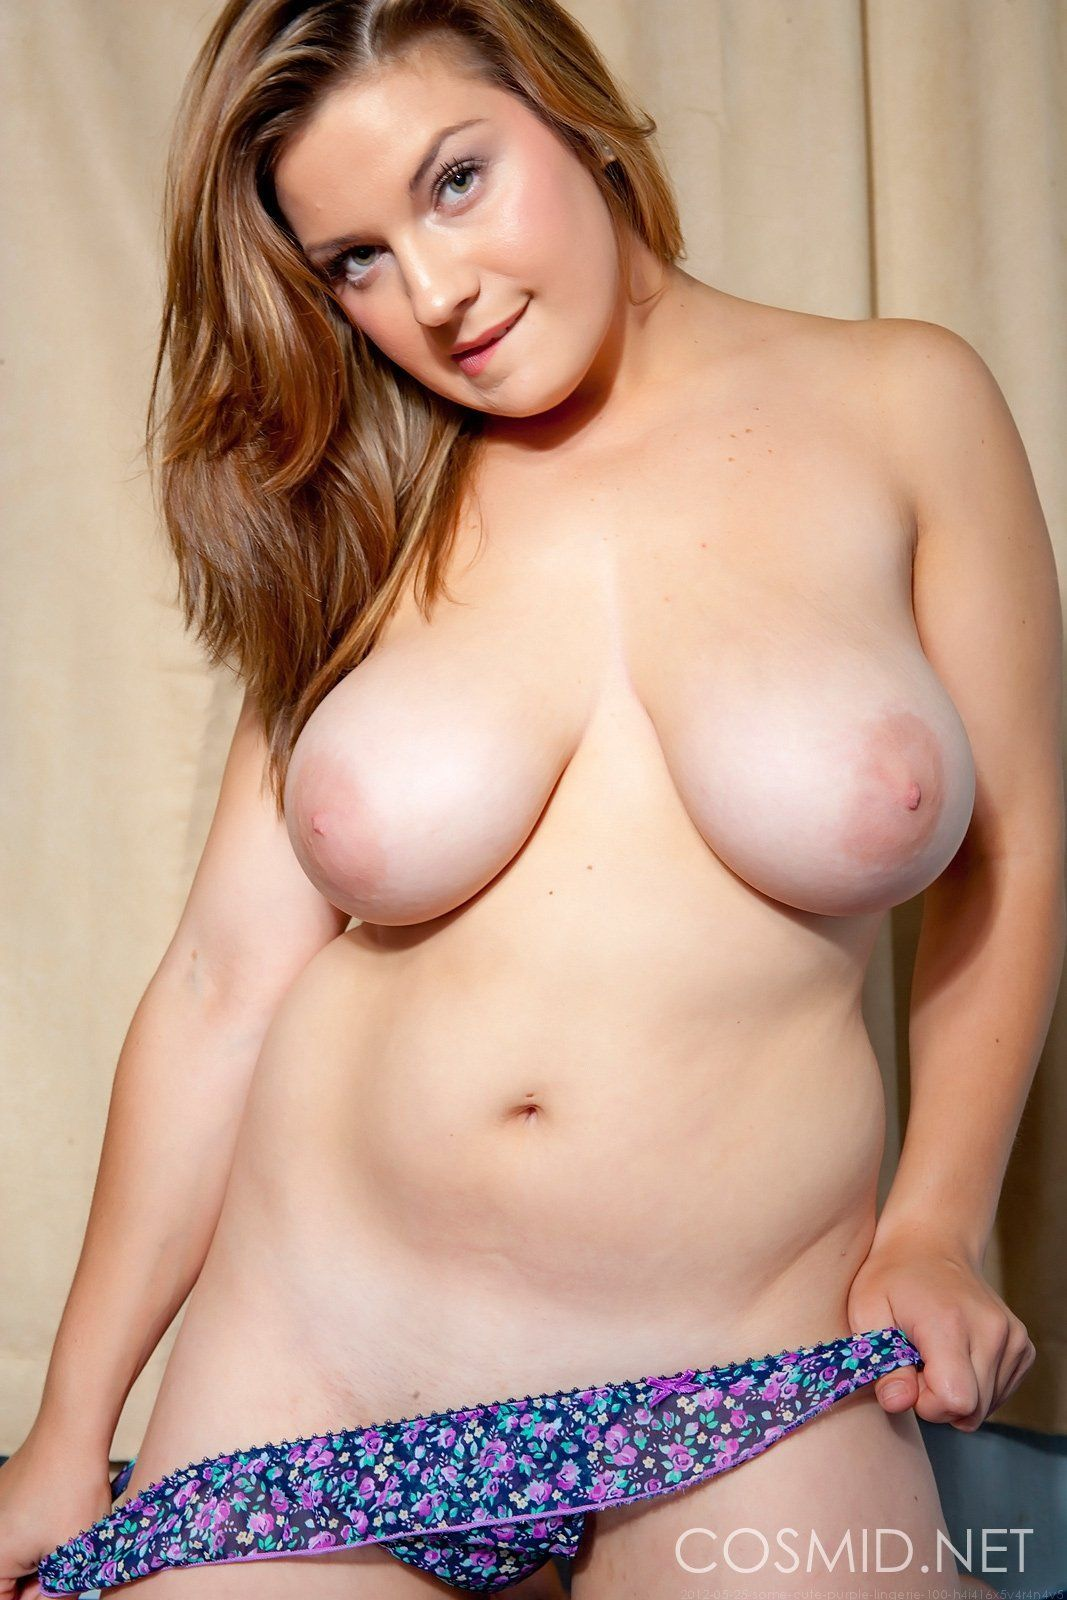 Boobs chubby girls pictures natural big sex